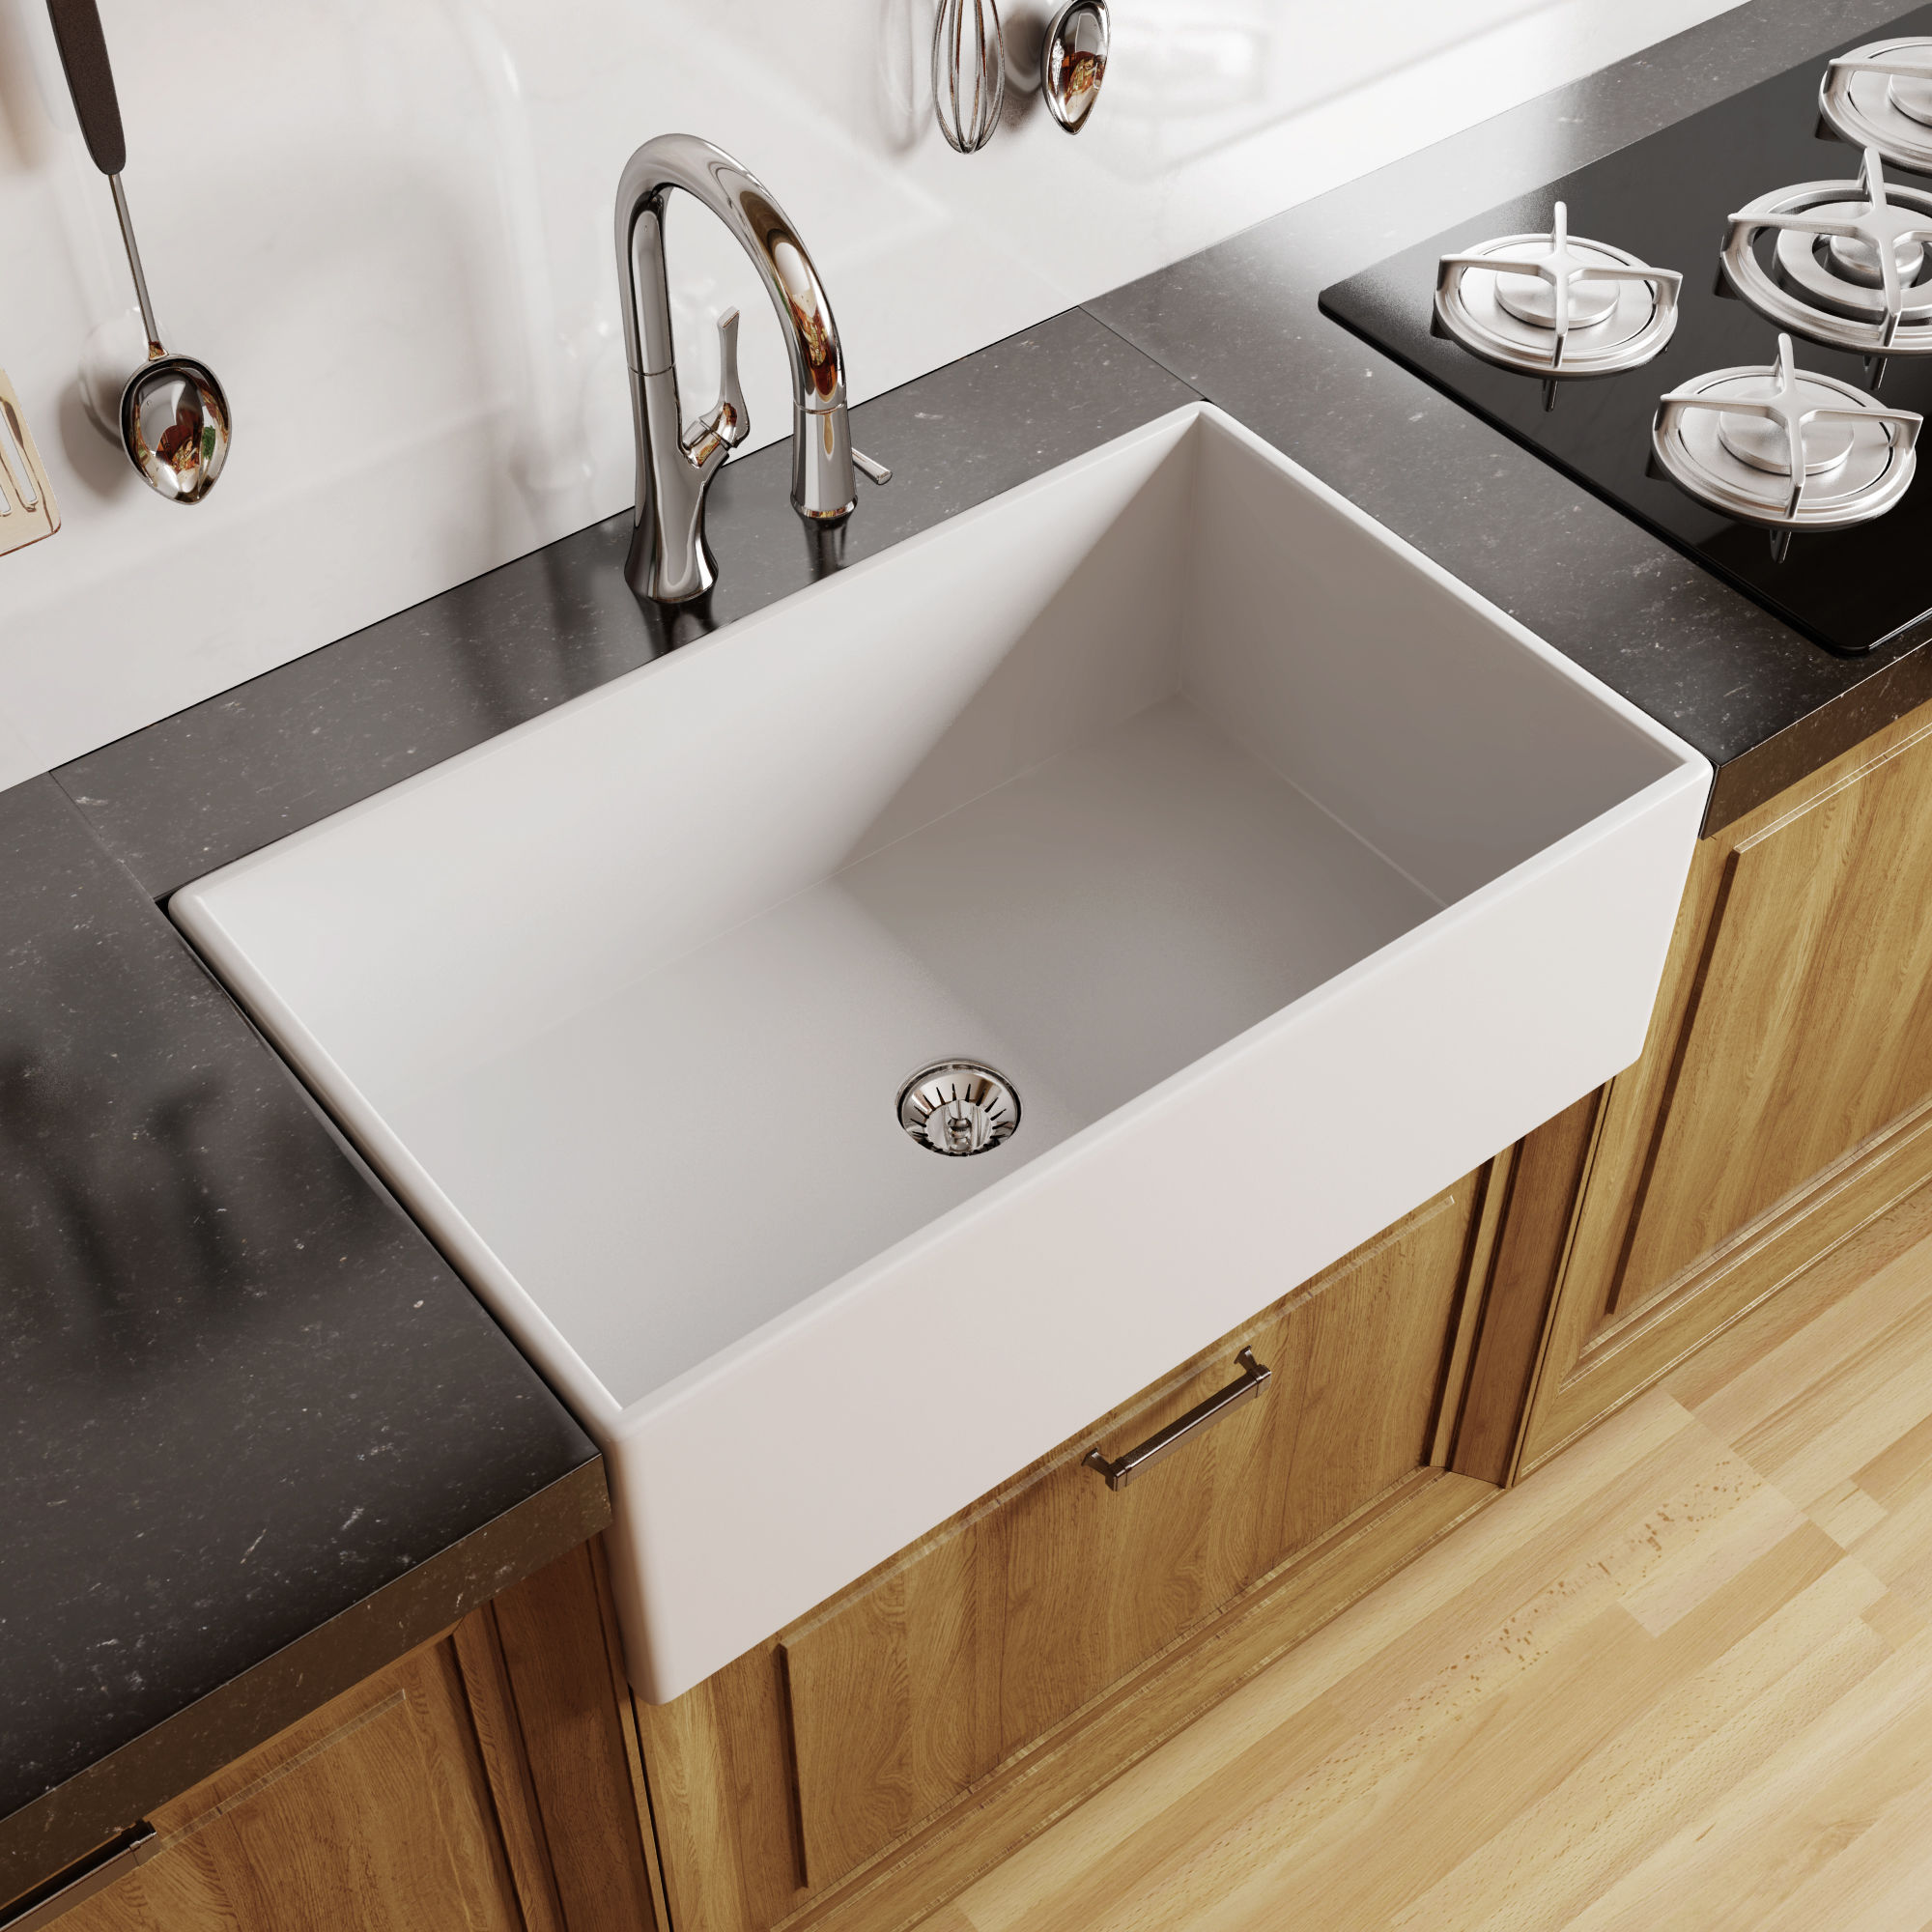 Miseno Mno33201afc White Inferno 33 Single Basin Farmhouse Fireclay Kitchen Sink Faucet